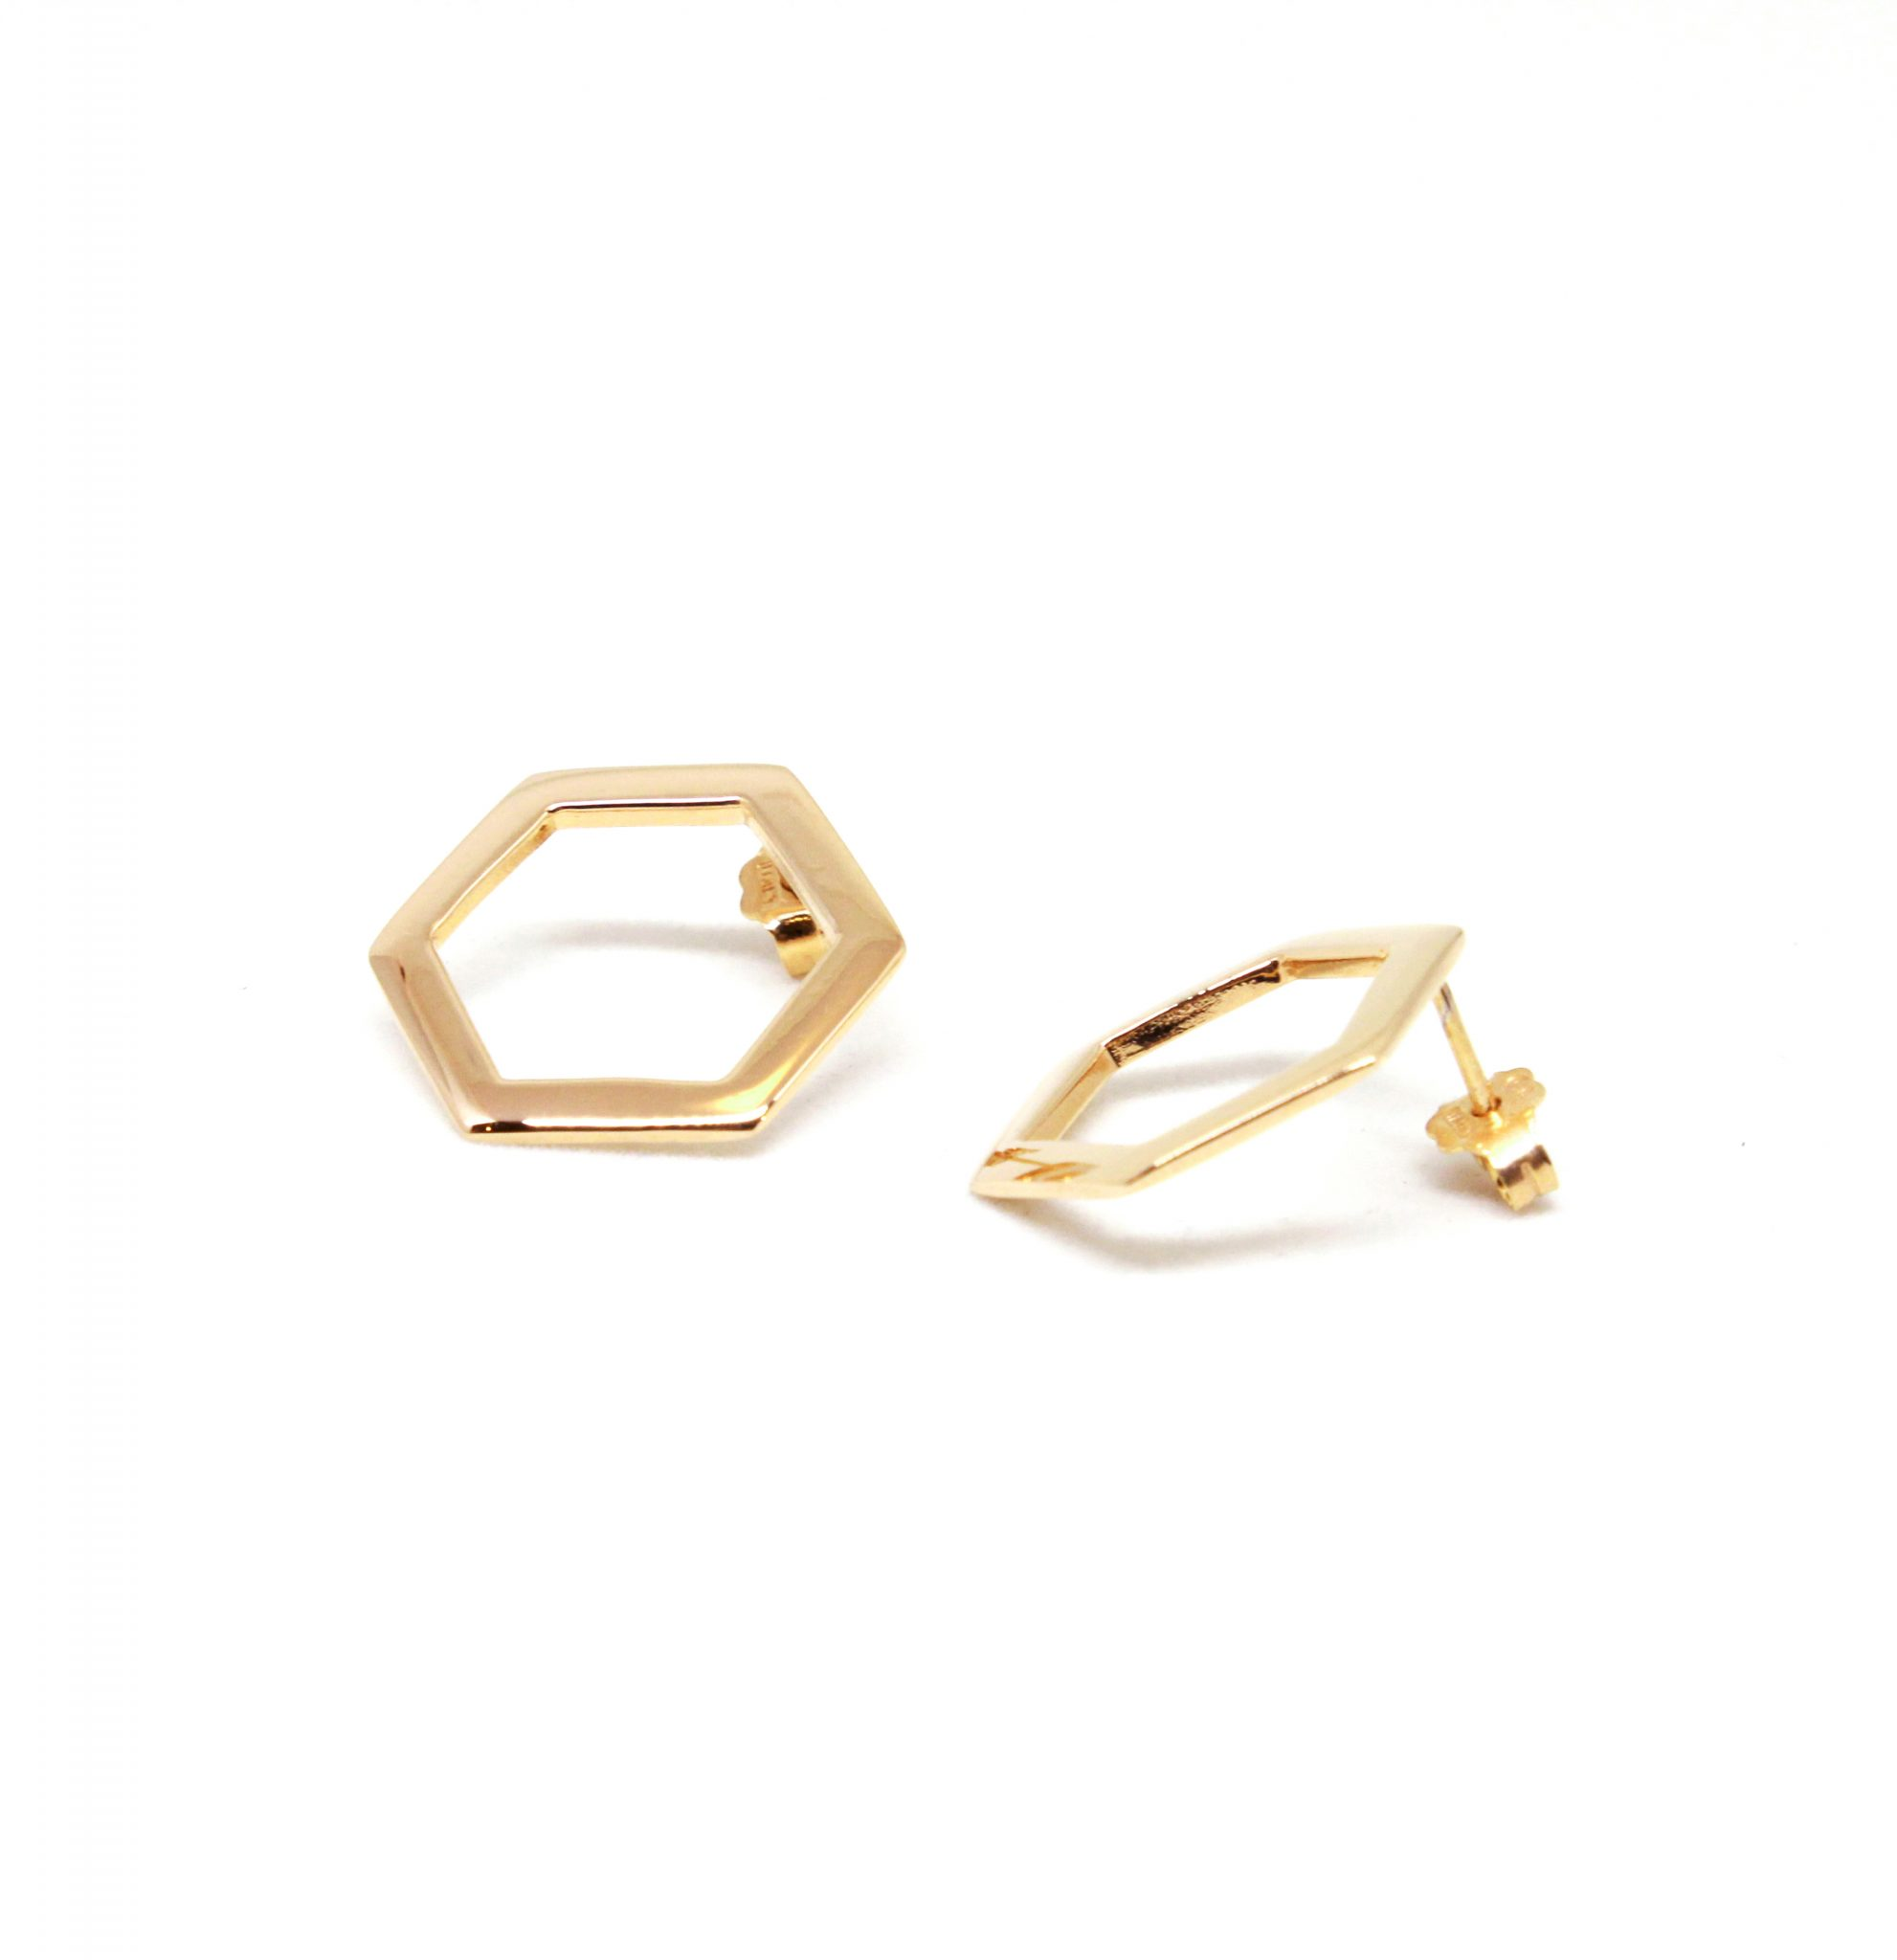 factory boo modern statement handmade and geometric gold leather earrings purple product hexagon